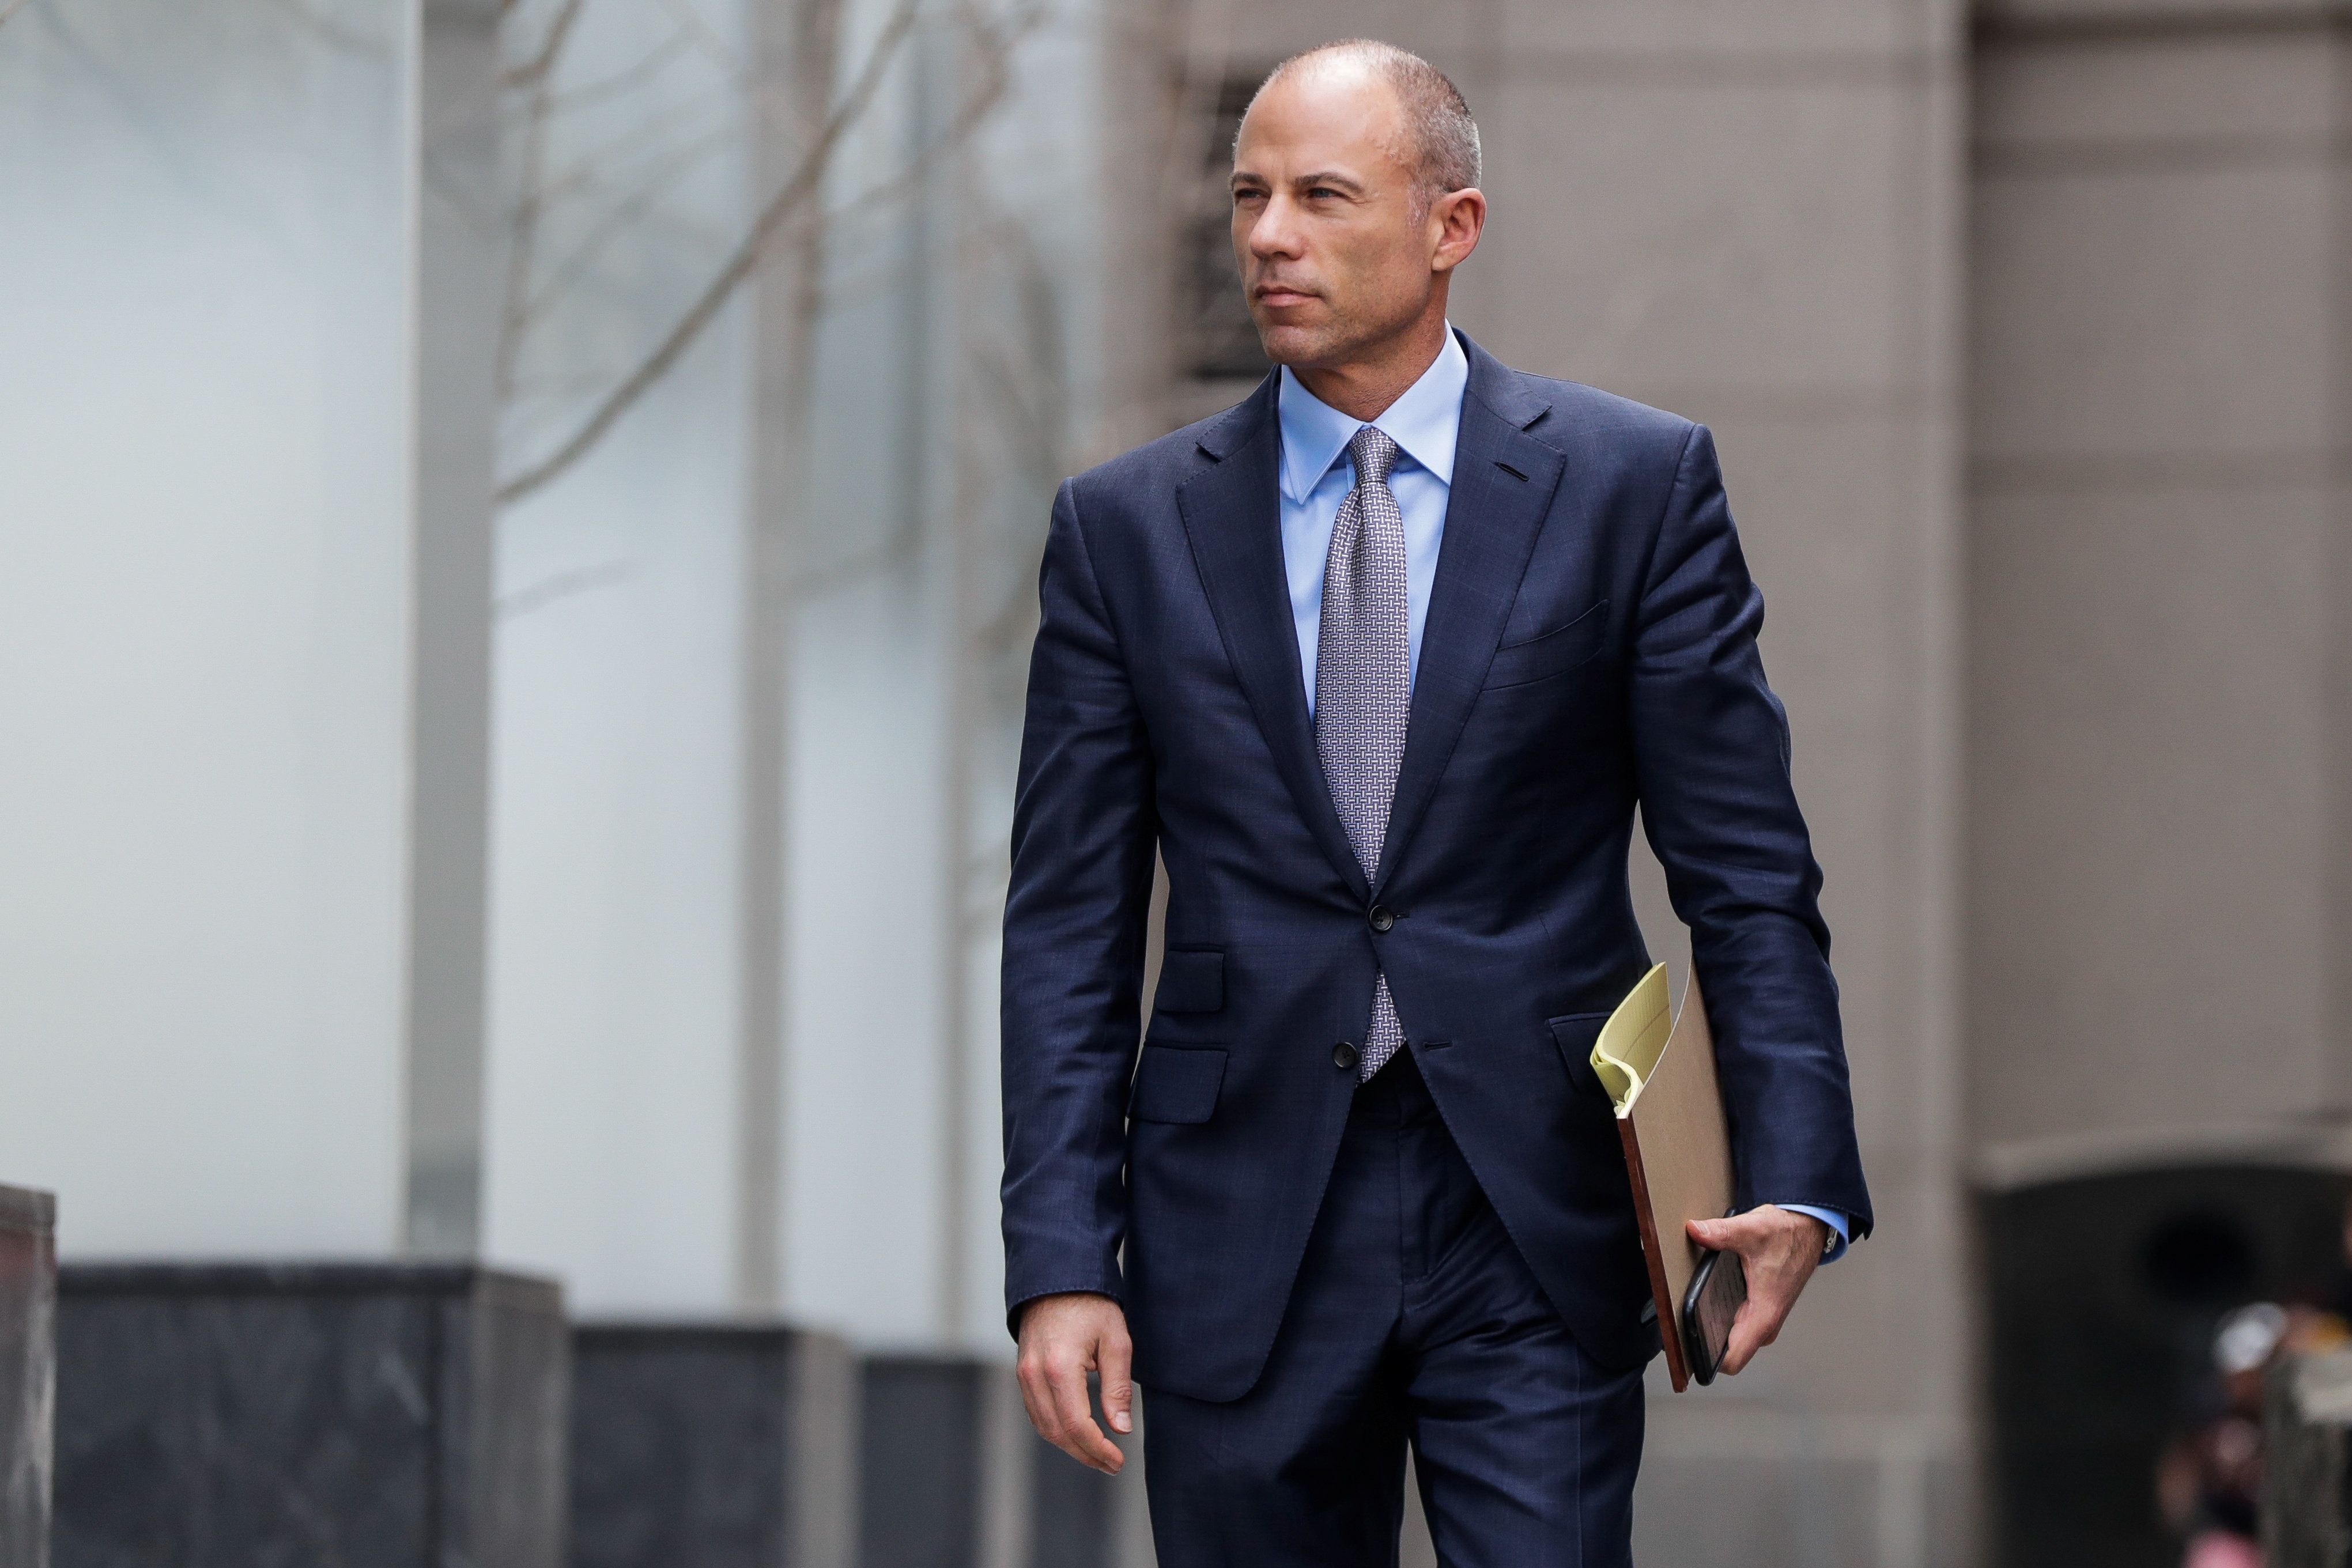 Michael Avenatti, attorney for Stormy Daniels, is pictured outside the Manhattan Federal Court in New York City on April 13,